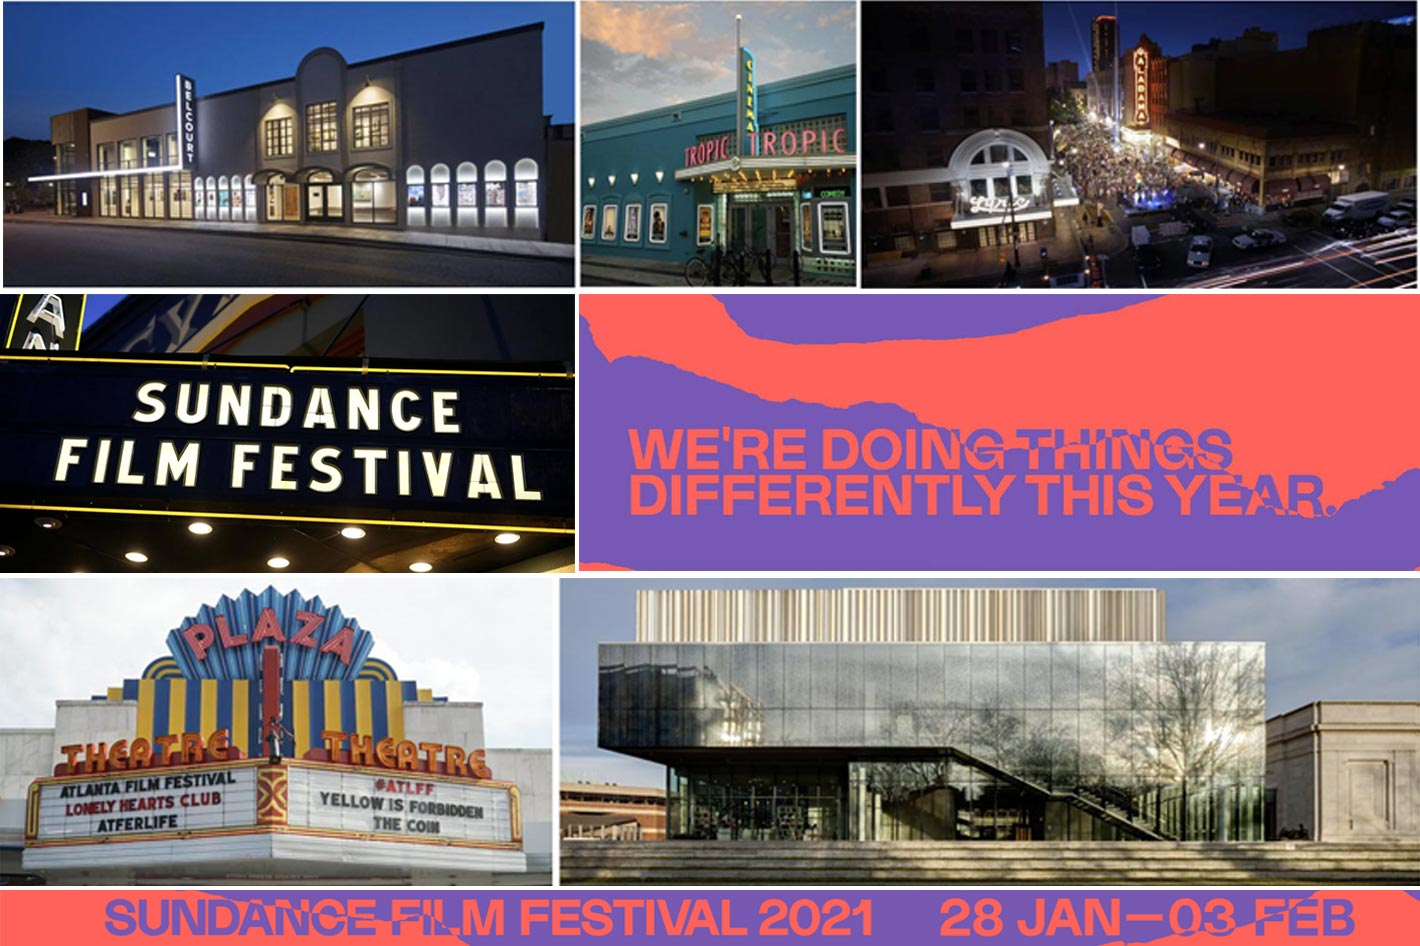 The best of 2021 Sundance Film Festival